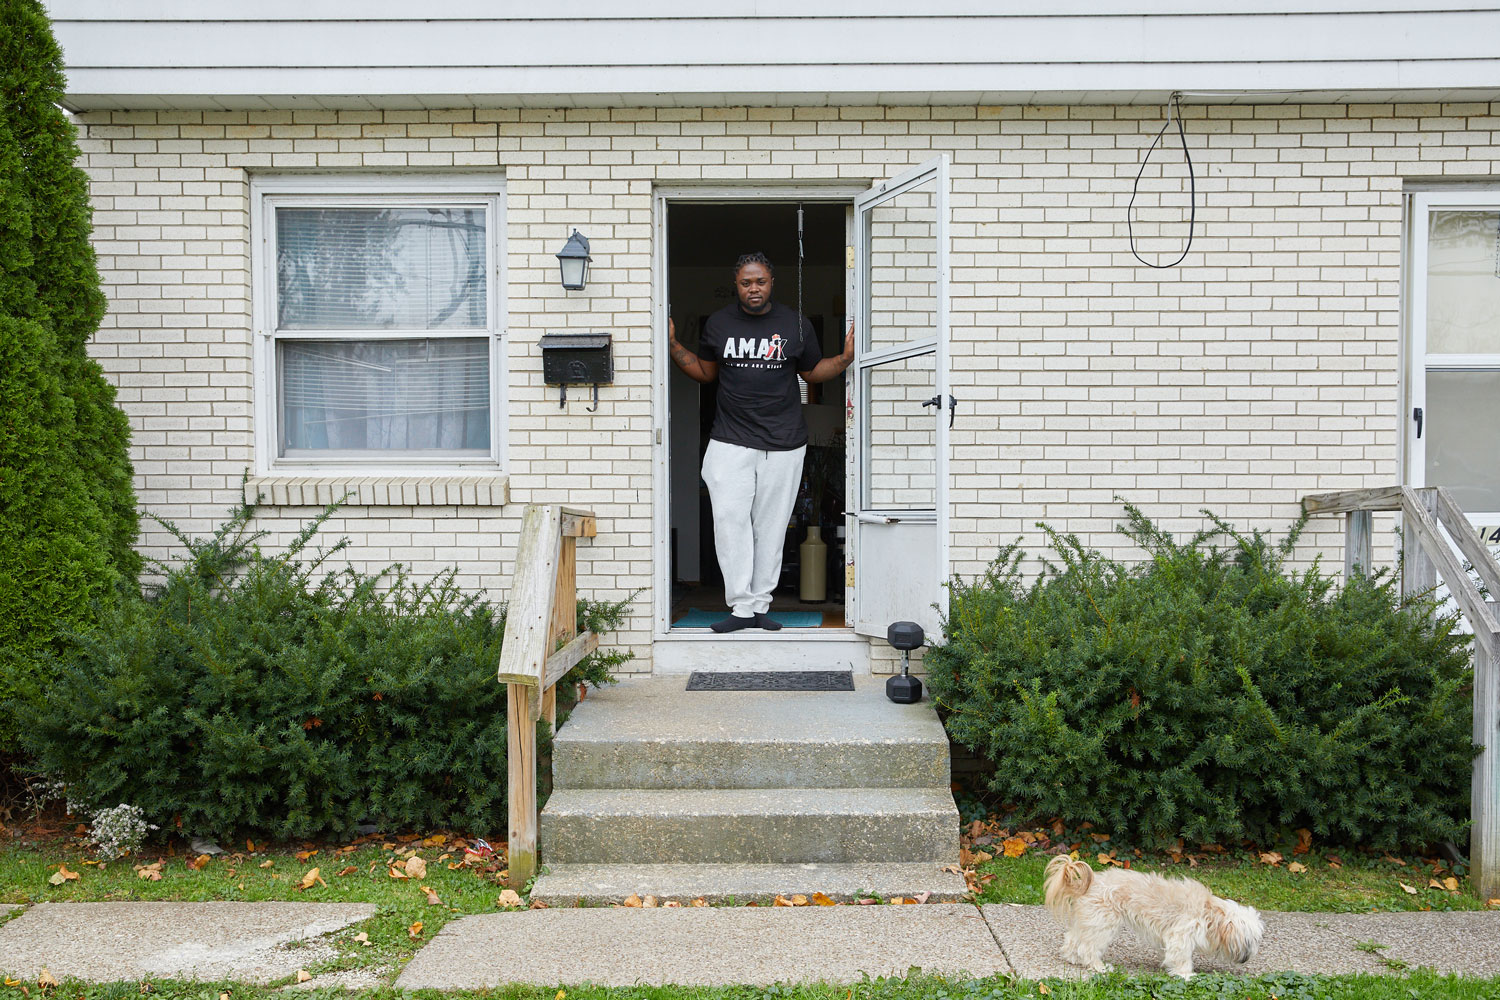 Melquan Barnett stands in the doorway of a house.